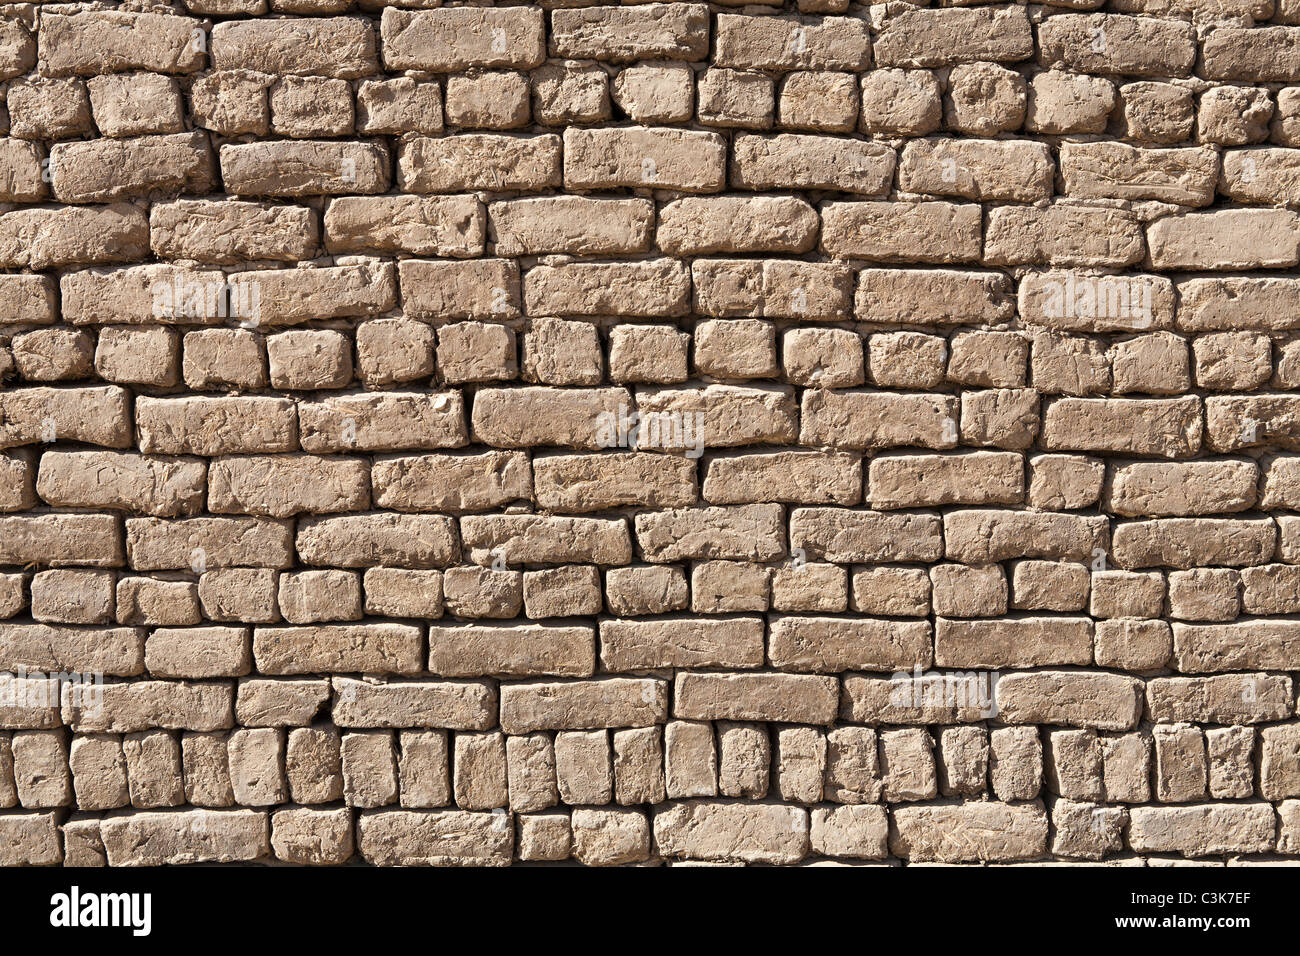 Detail close up of an area of mud brick wall showing fourteen courses, Egypt - Stock Image